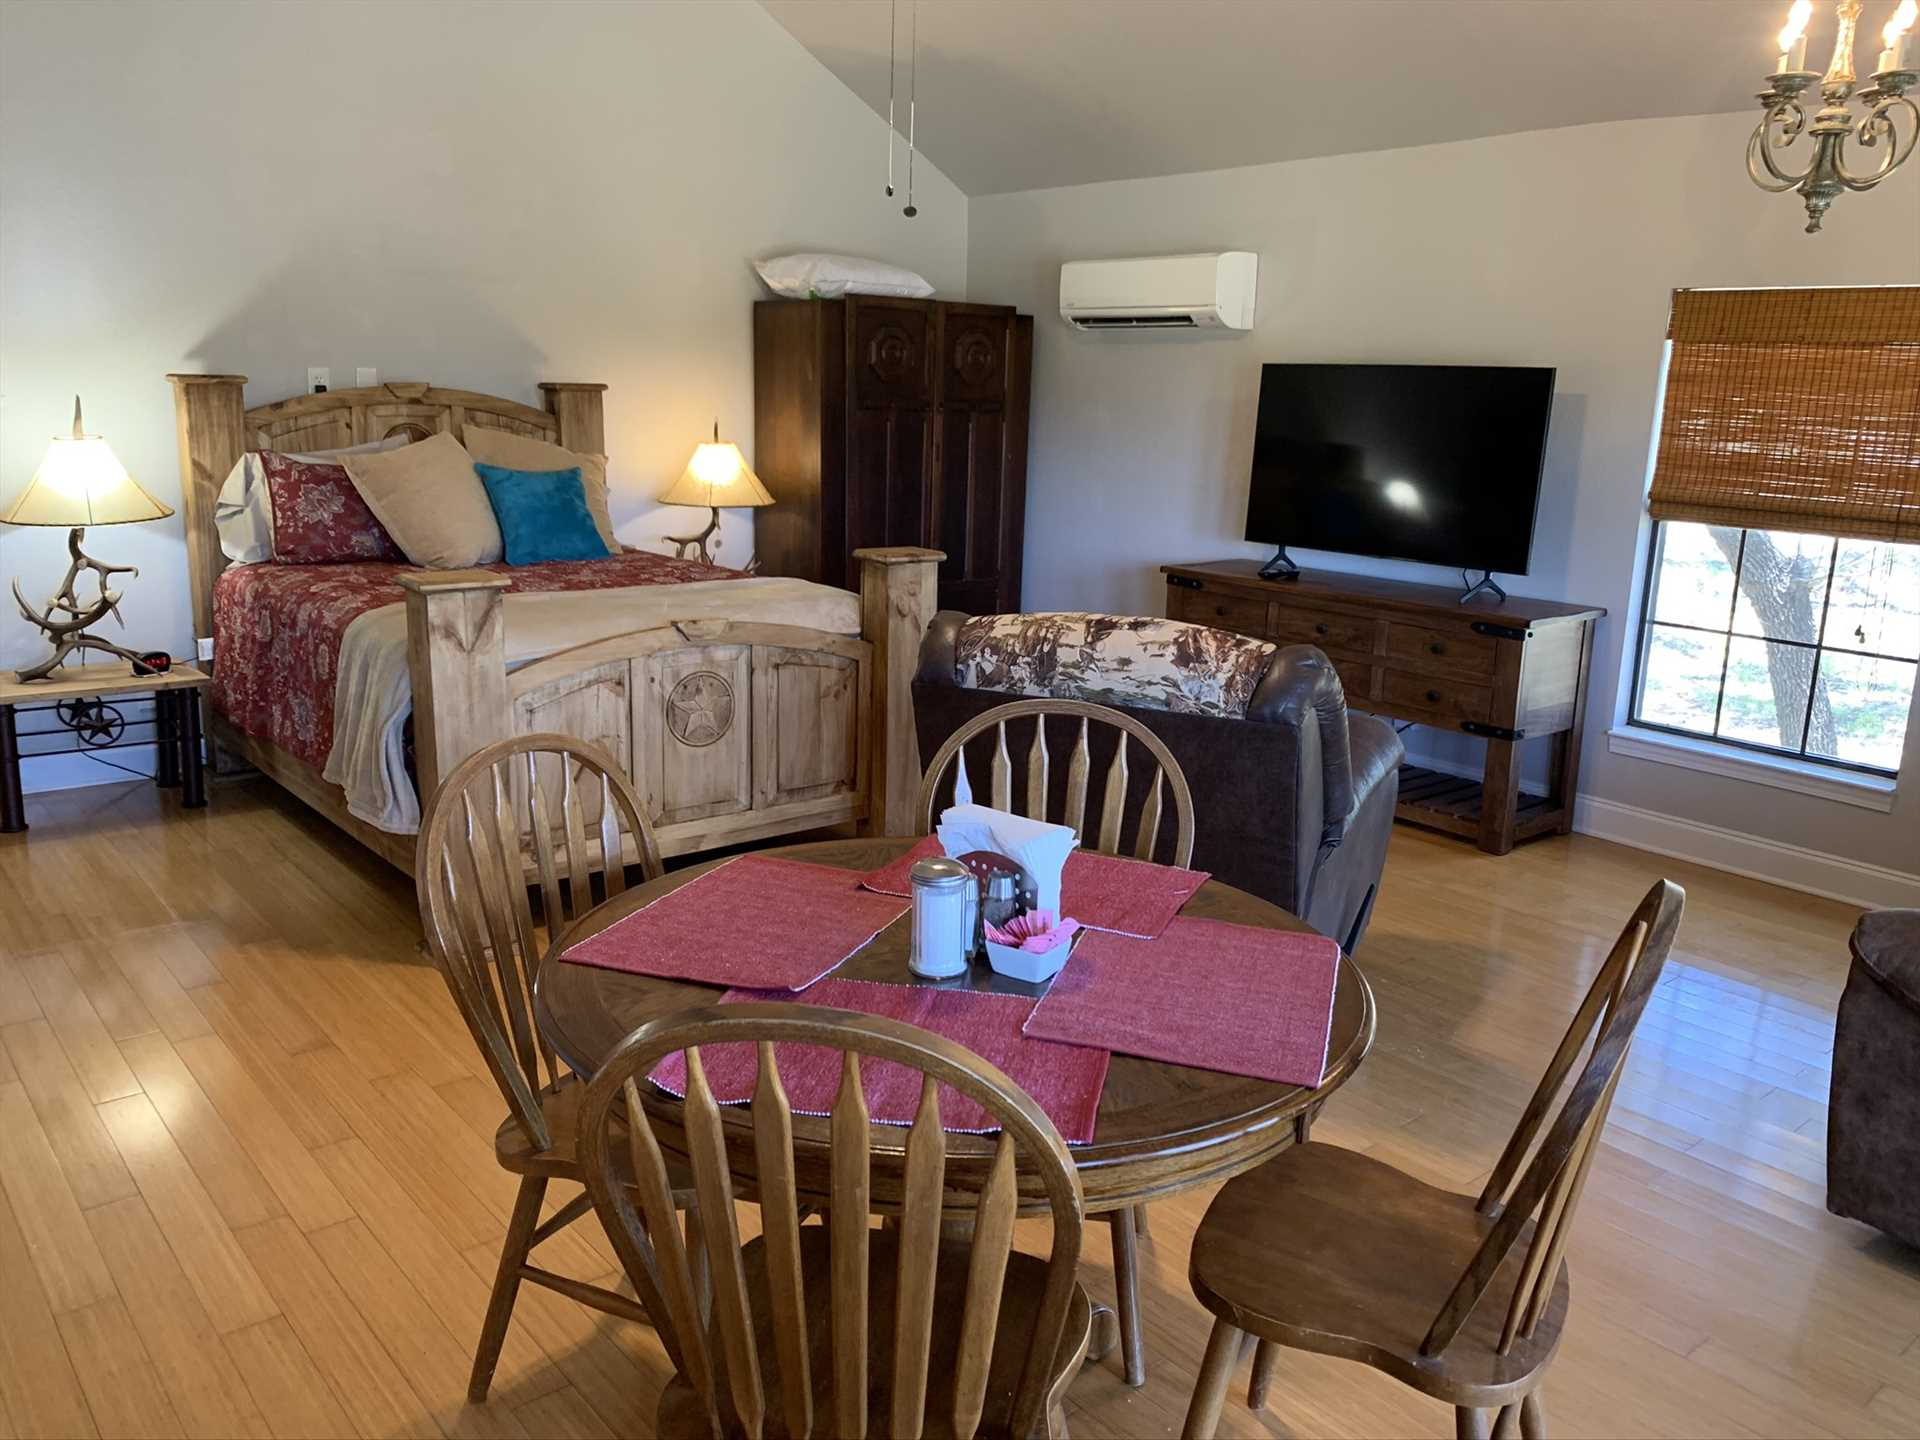 AC and heat, satellite TV with over 200 channels, Wifi Internet and cell service, and even a roll-away bed for a third guest are among the luxuries you'll find at the Hideout.